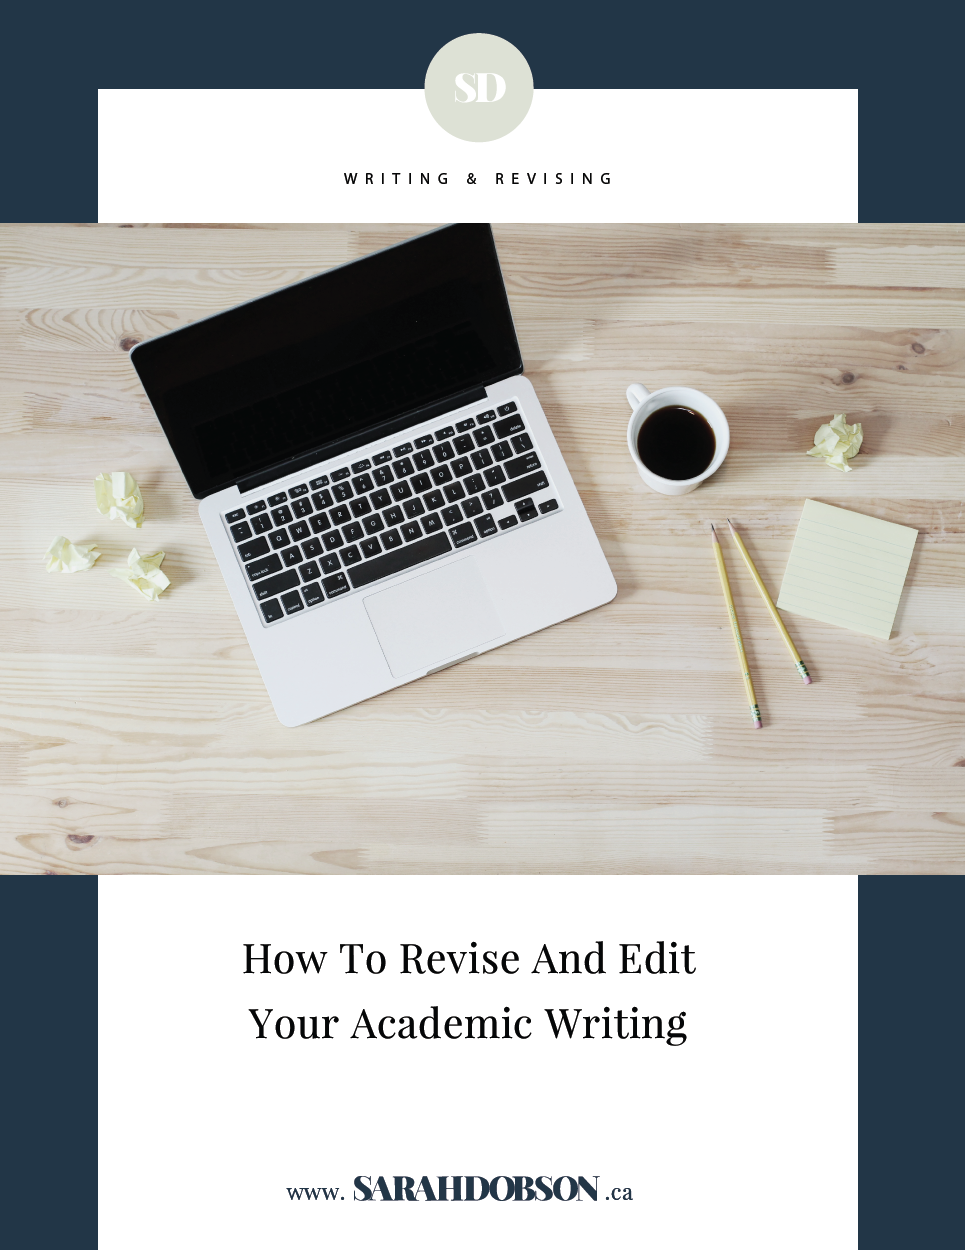 How to Revise and Edit Your Academic Writing